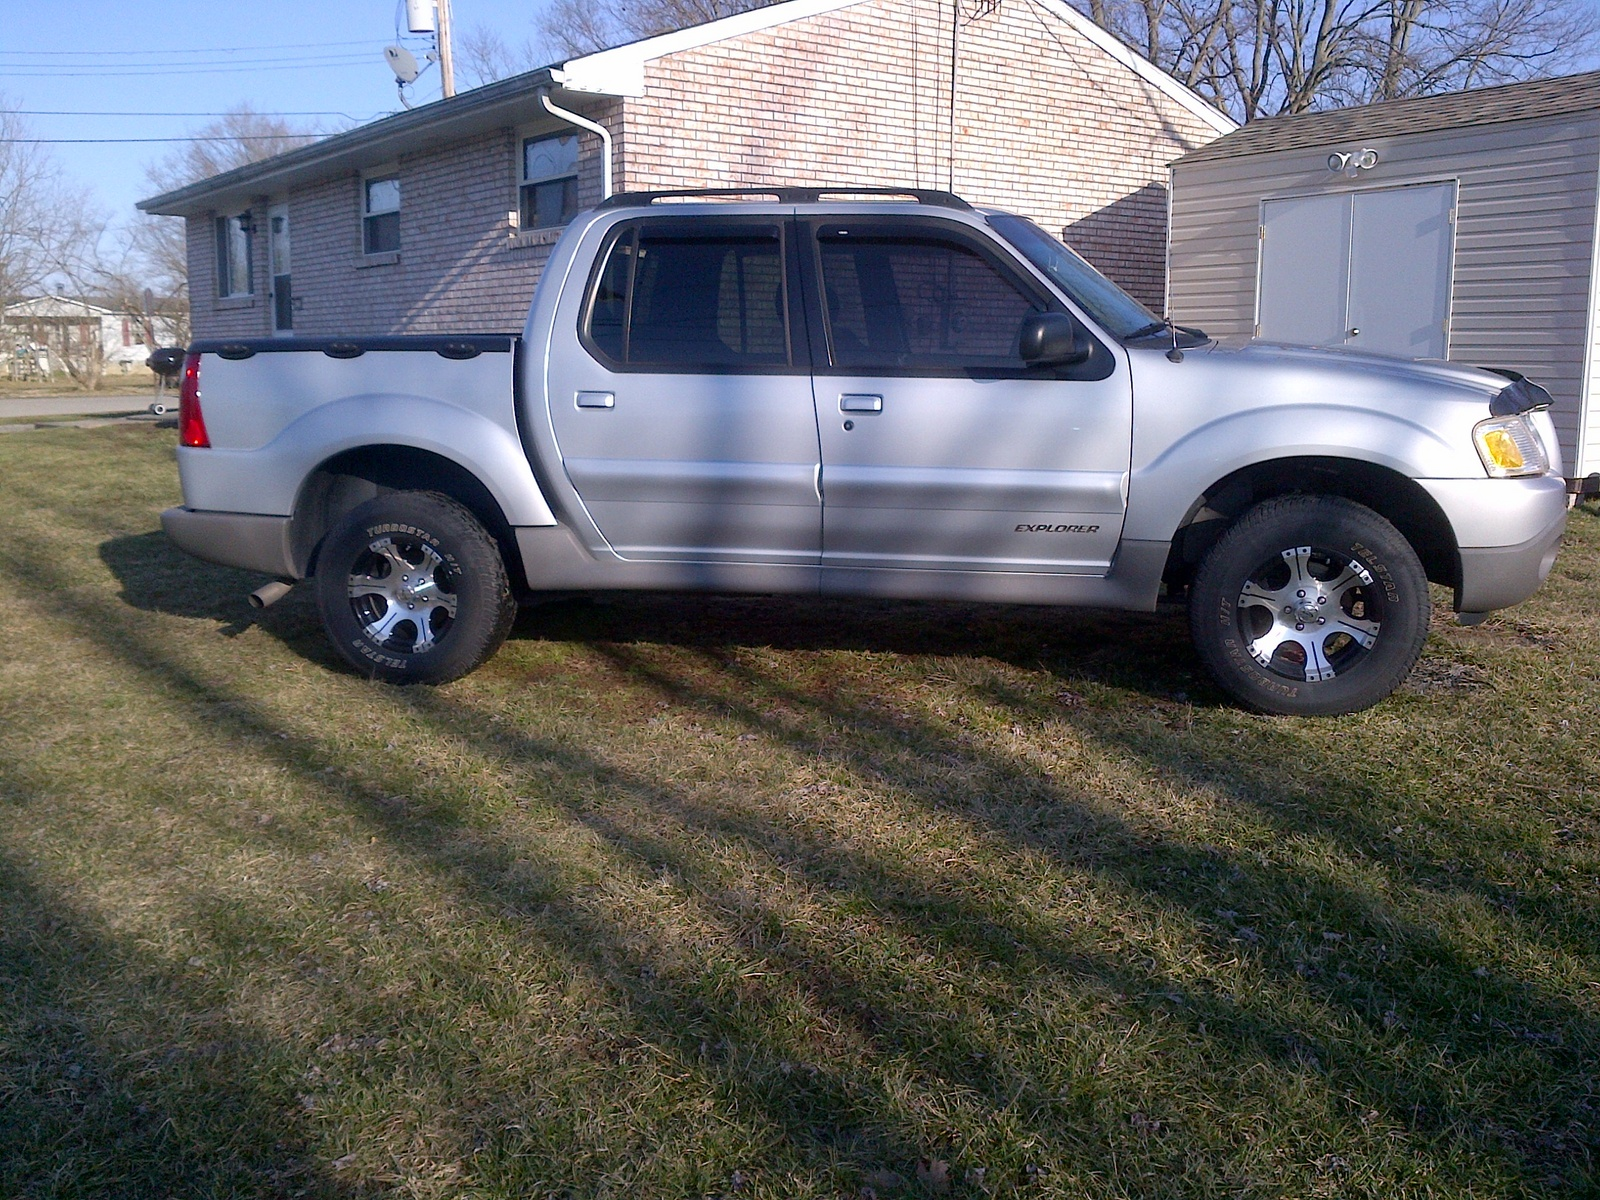 Ford 2002 Explorer Owner s Manual